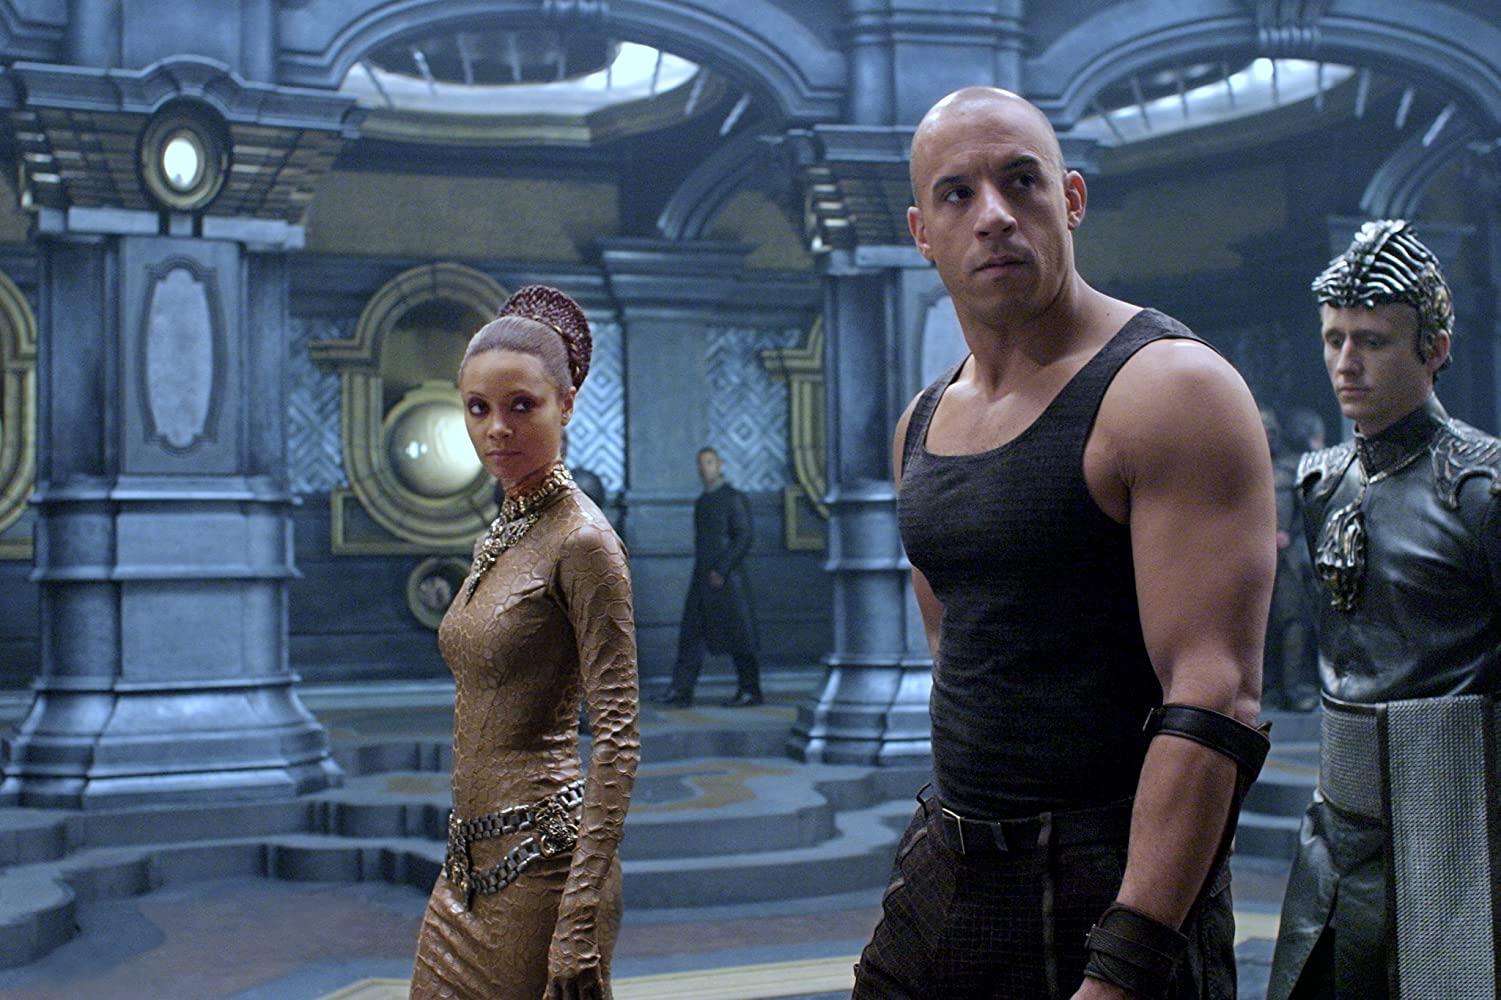 Vin Diesel, Thandie Newton, and Linus Roache in The Chronicles of Riddick (2004)